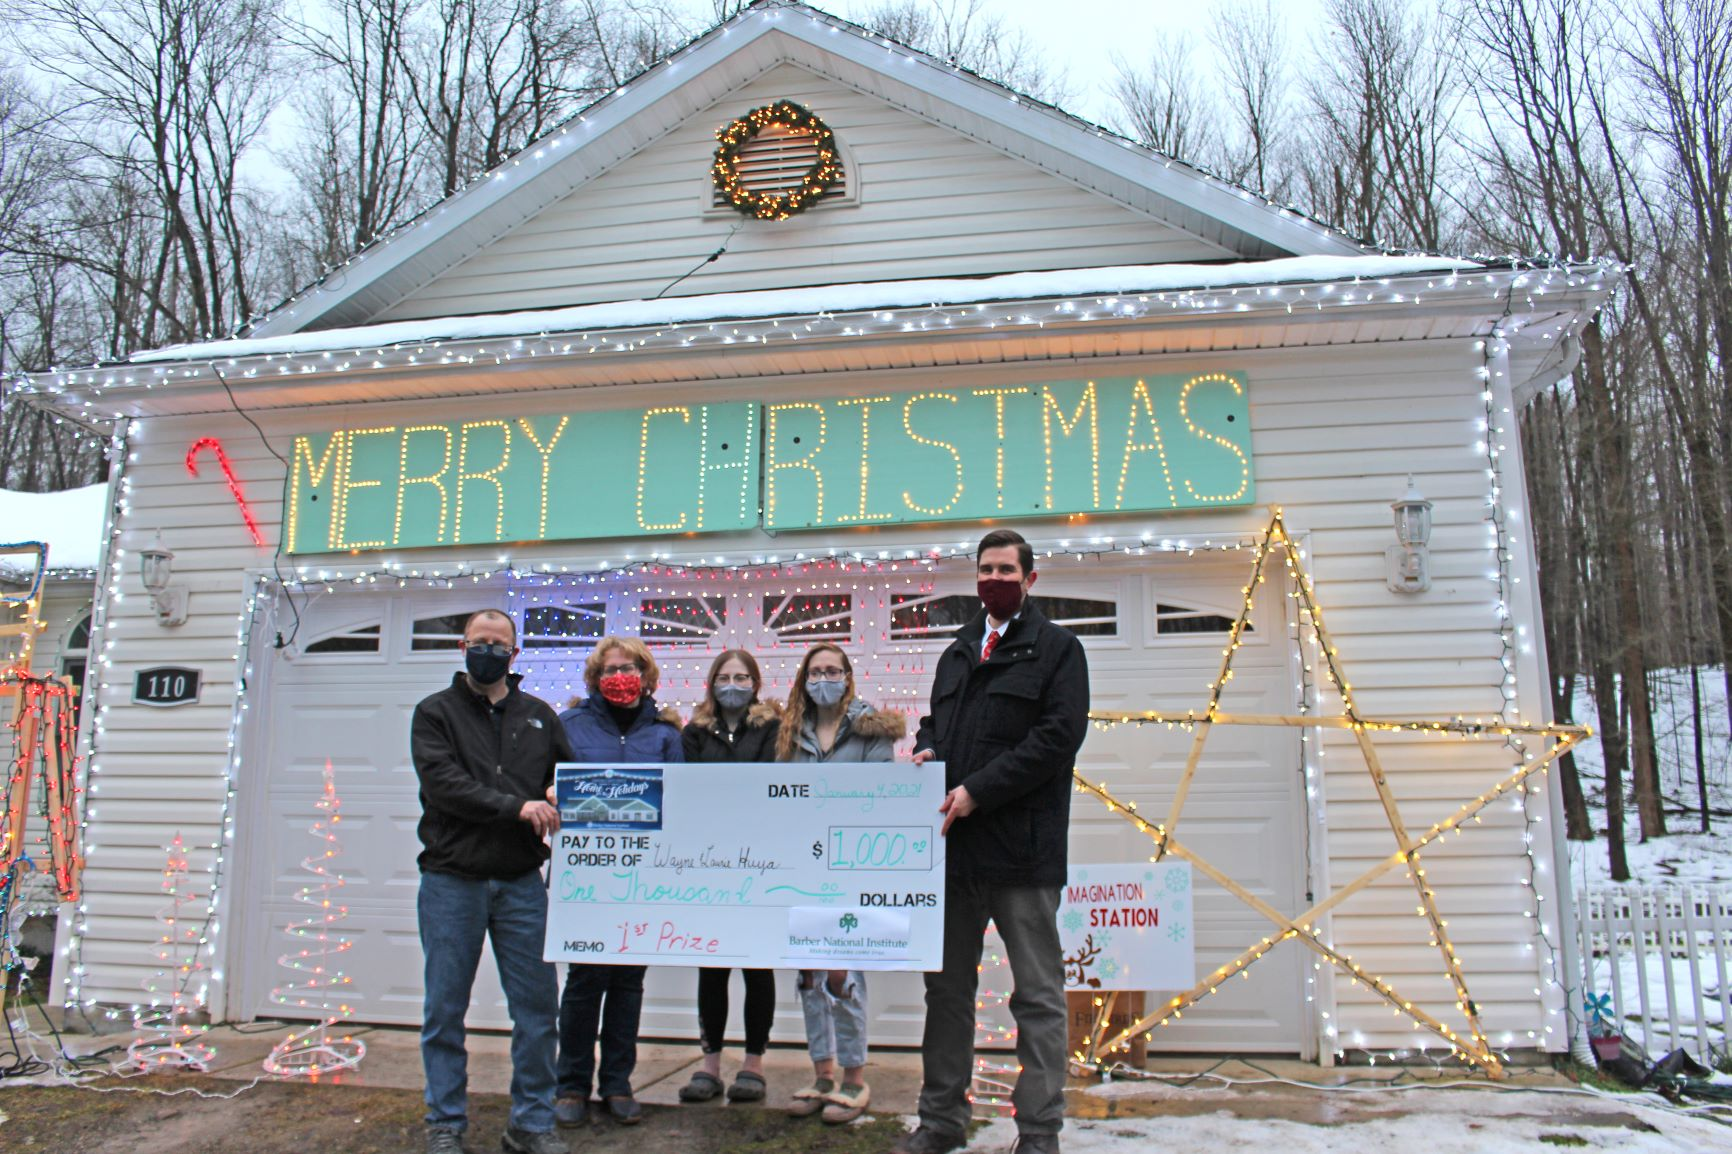 Awarding first place house display winners with check